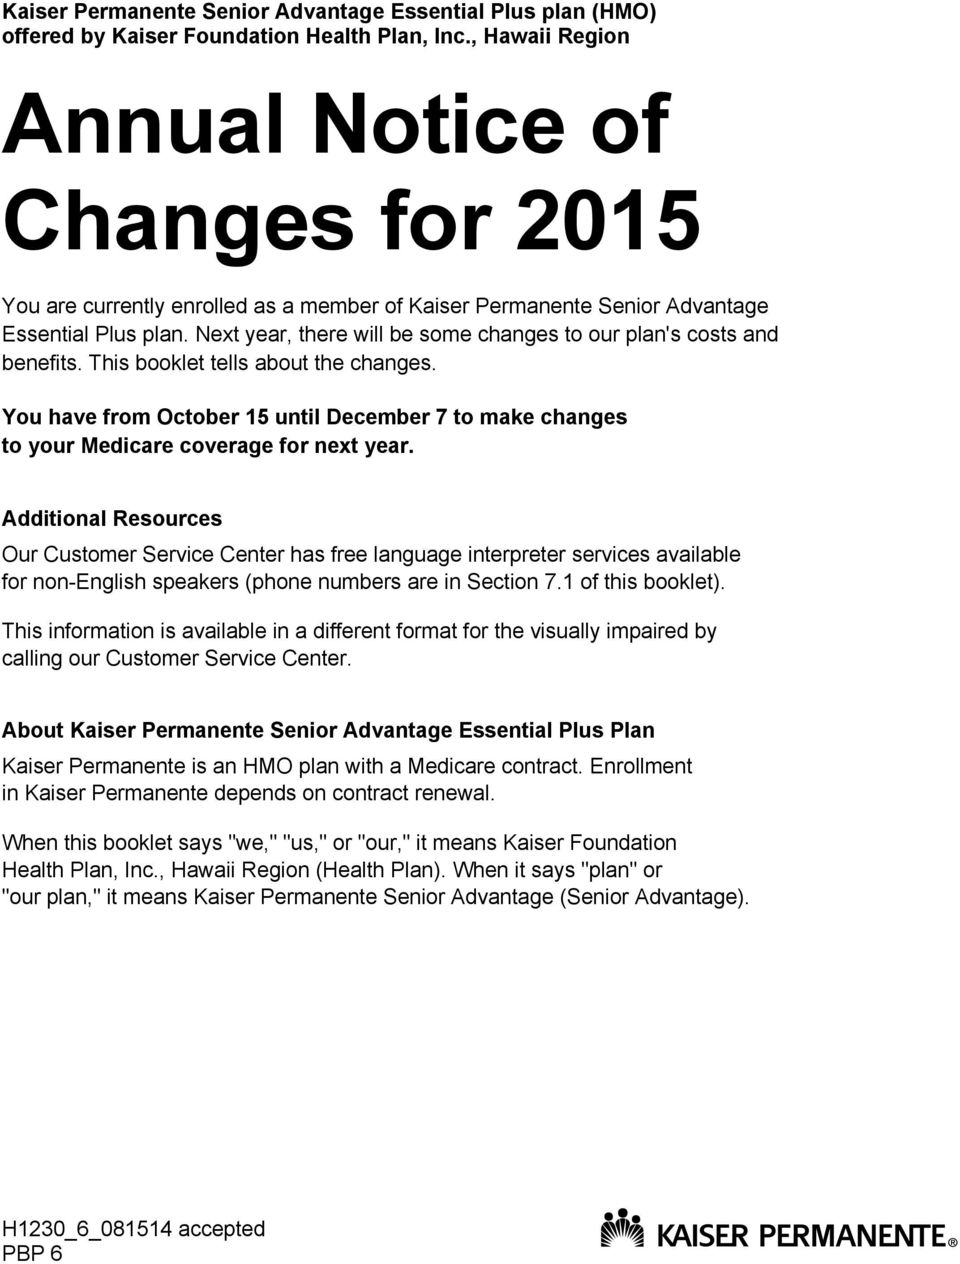 Next year, there will be some changes to our plan's costs and benefits. This booklet tells about the changes.